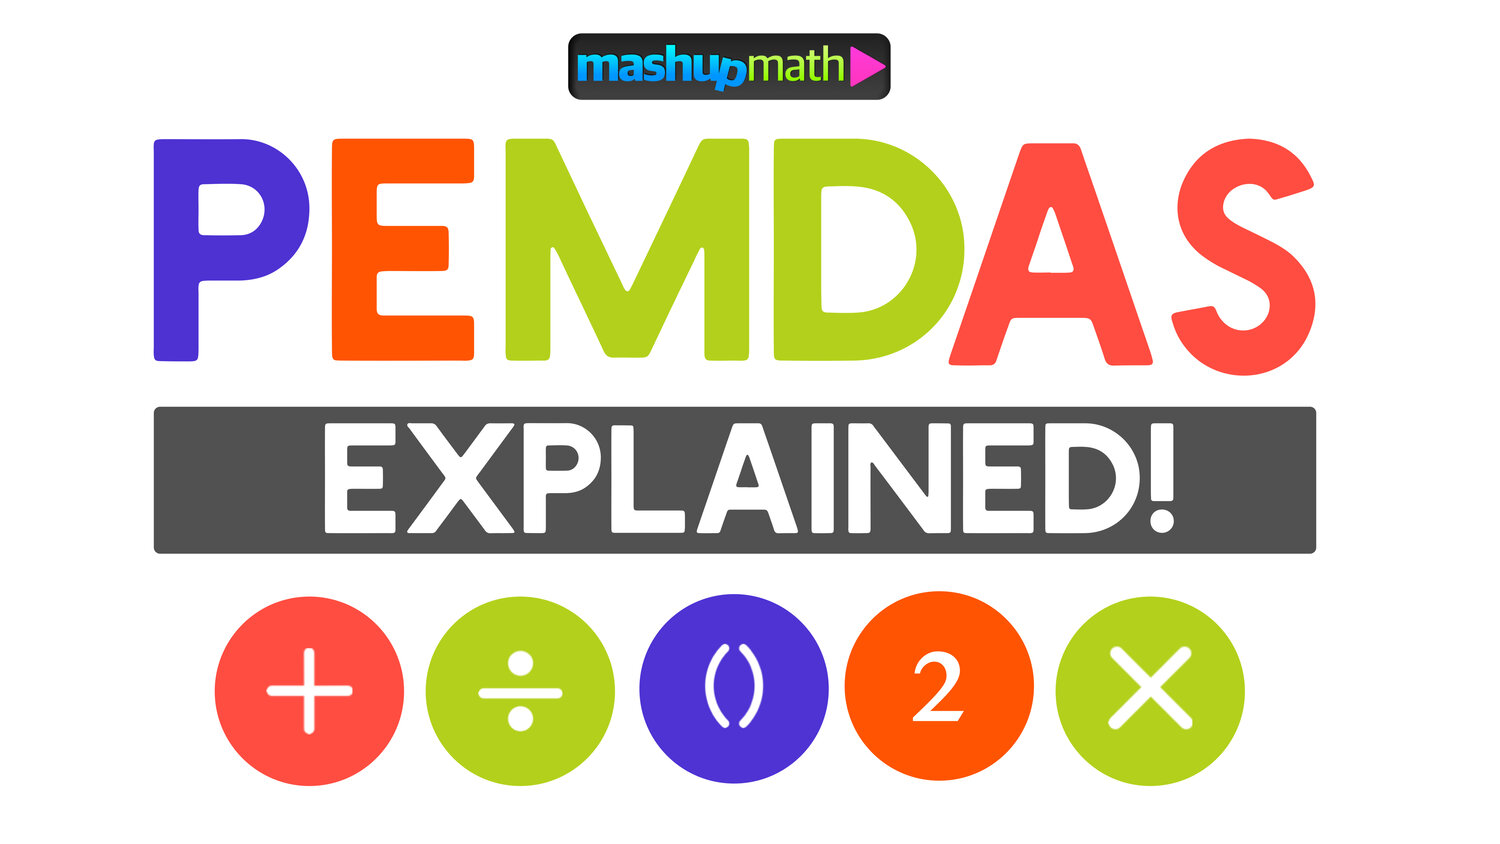 PEMDAS Meaning Explained with Examples — Mashup Math